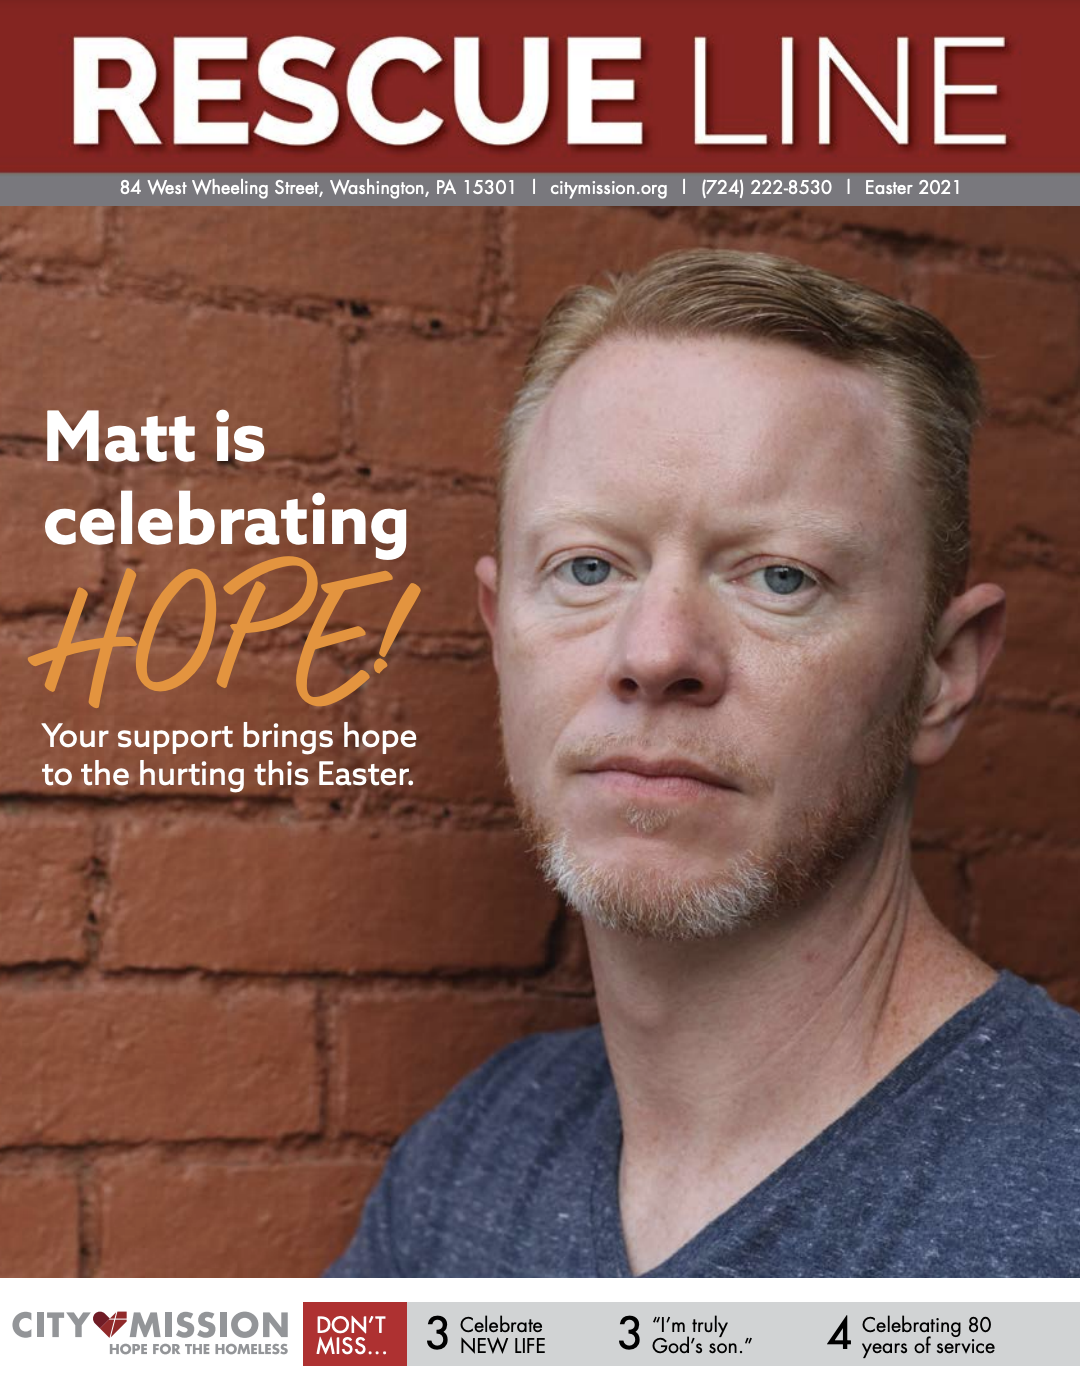 Matt is celebrating hope this Easter